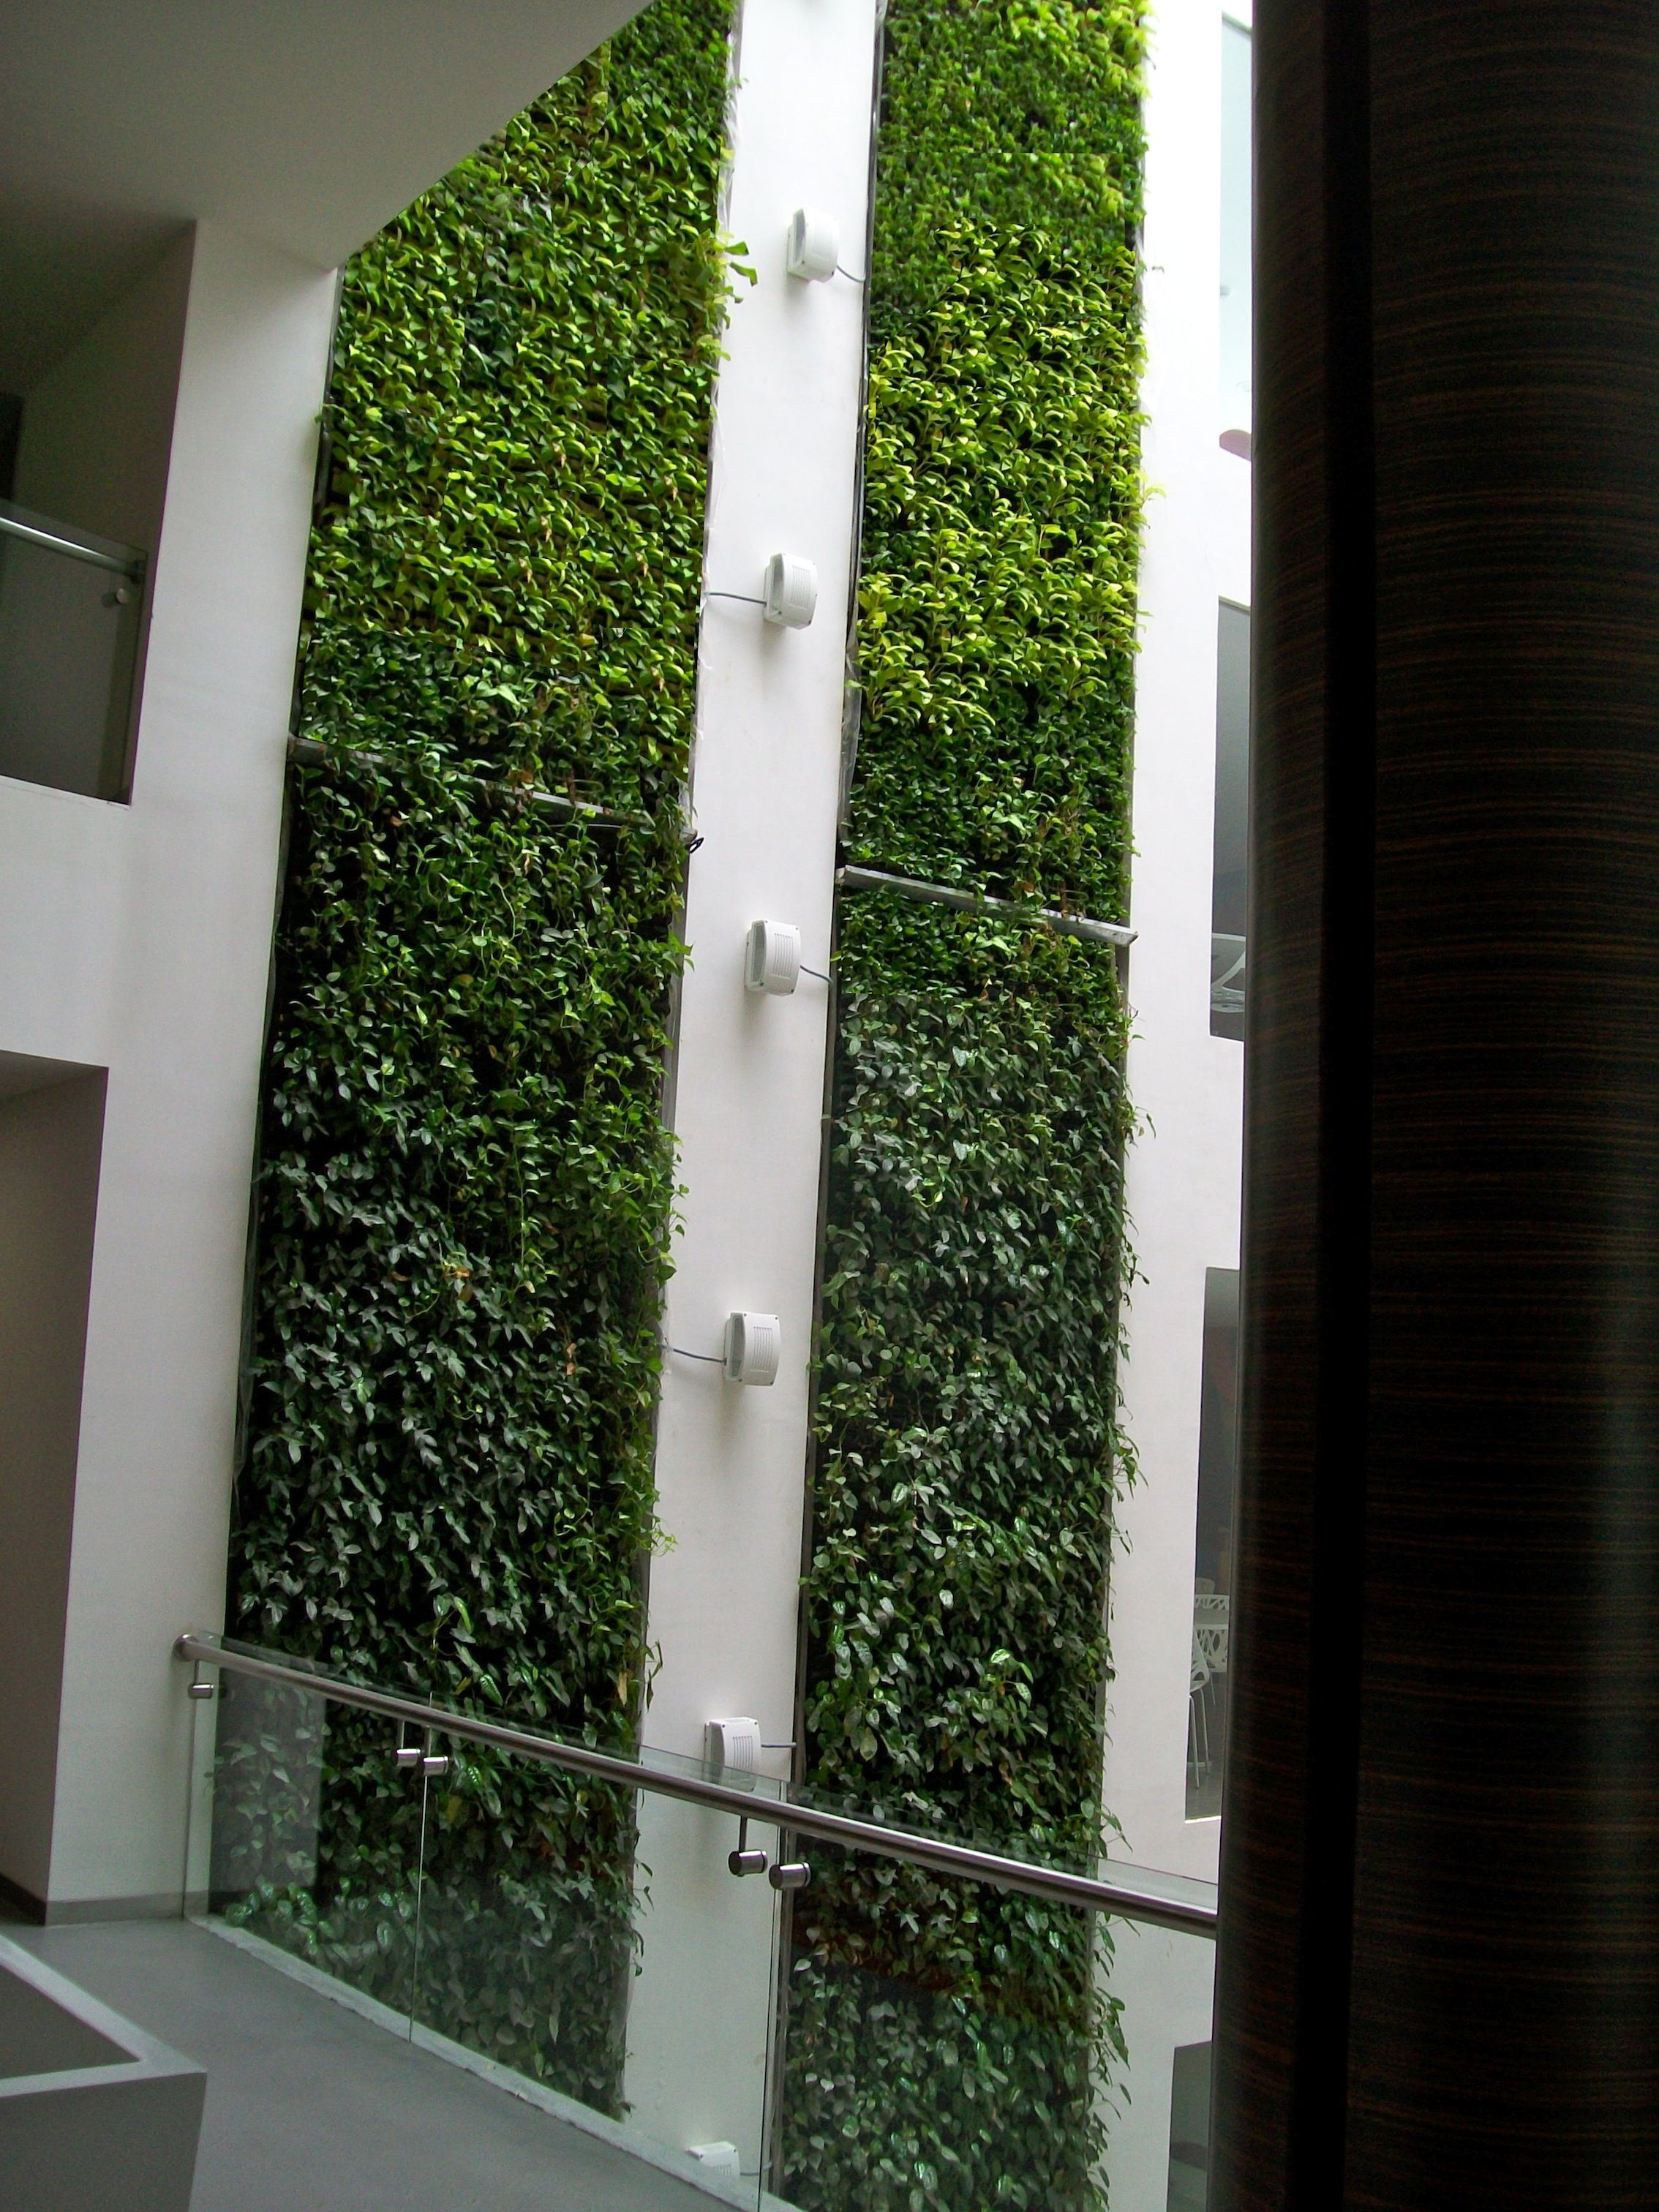 Medium Of Wall Indoor Garden